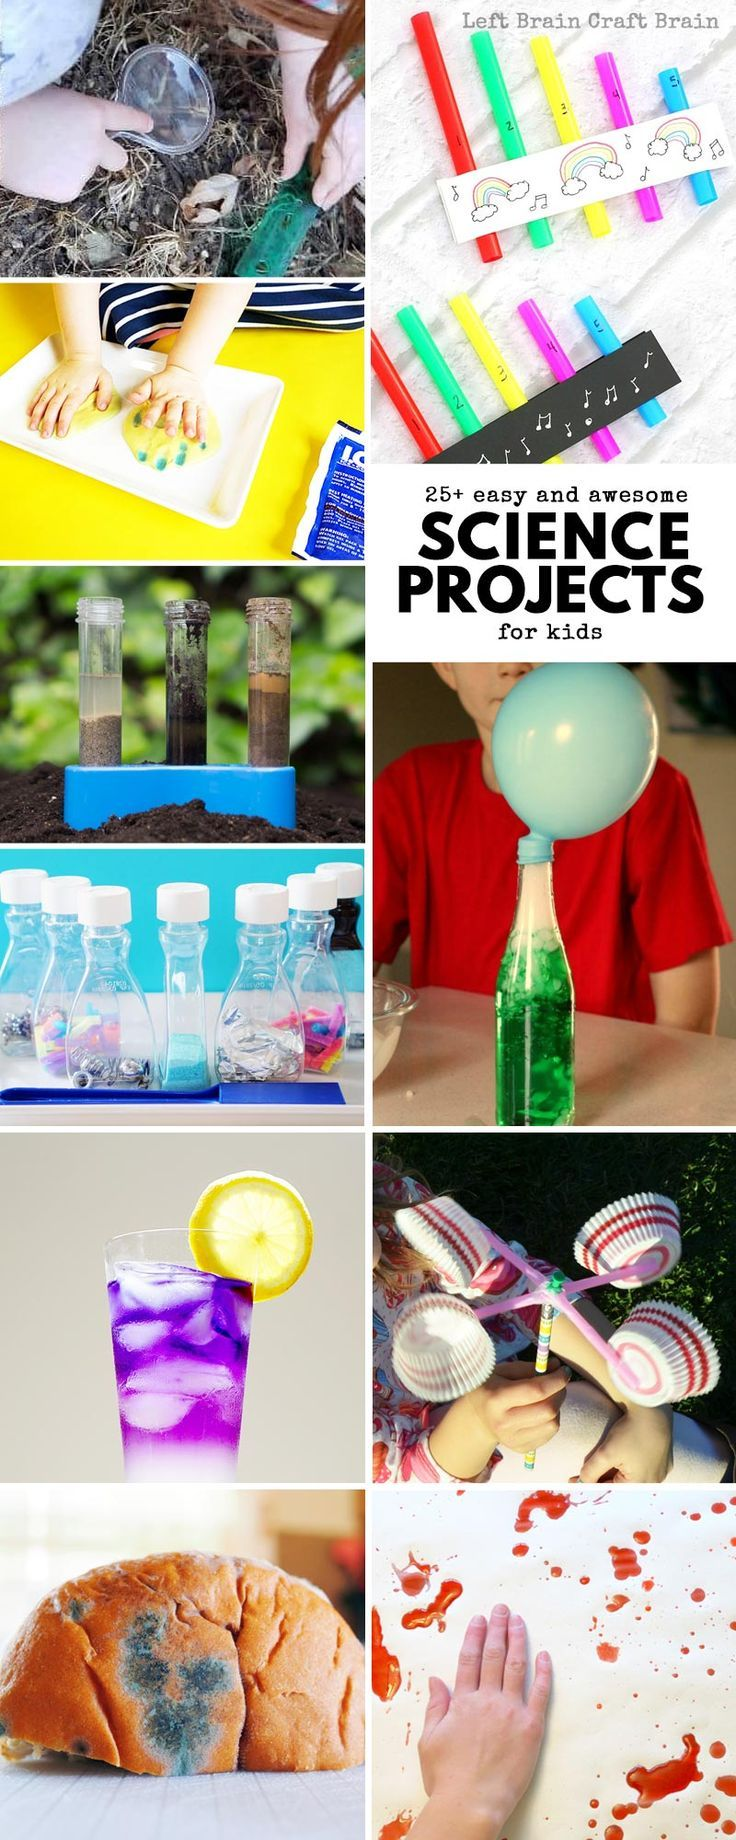 Awesome science projects